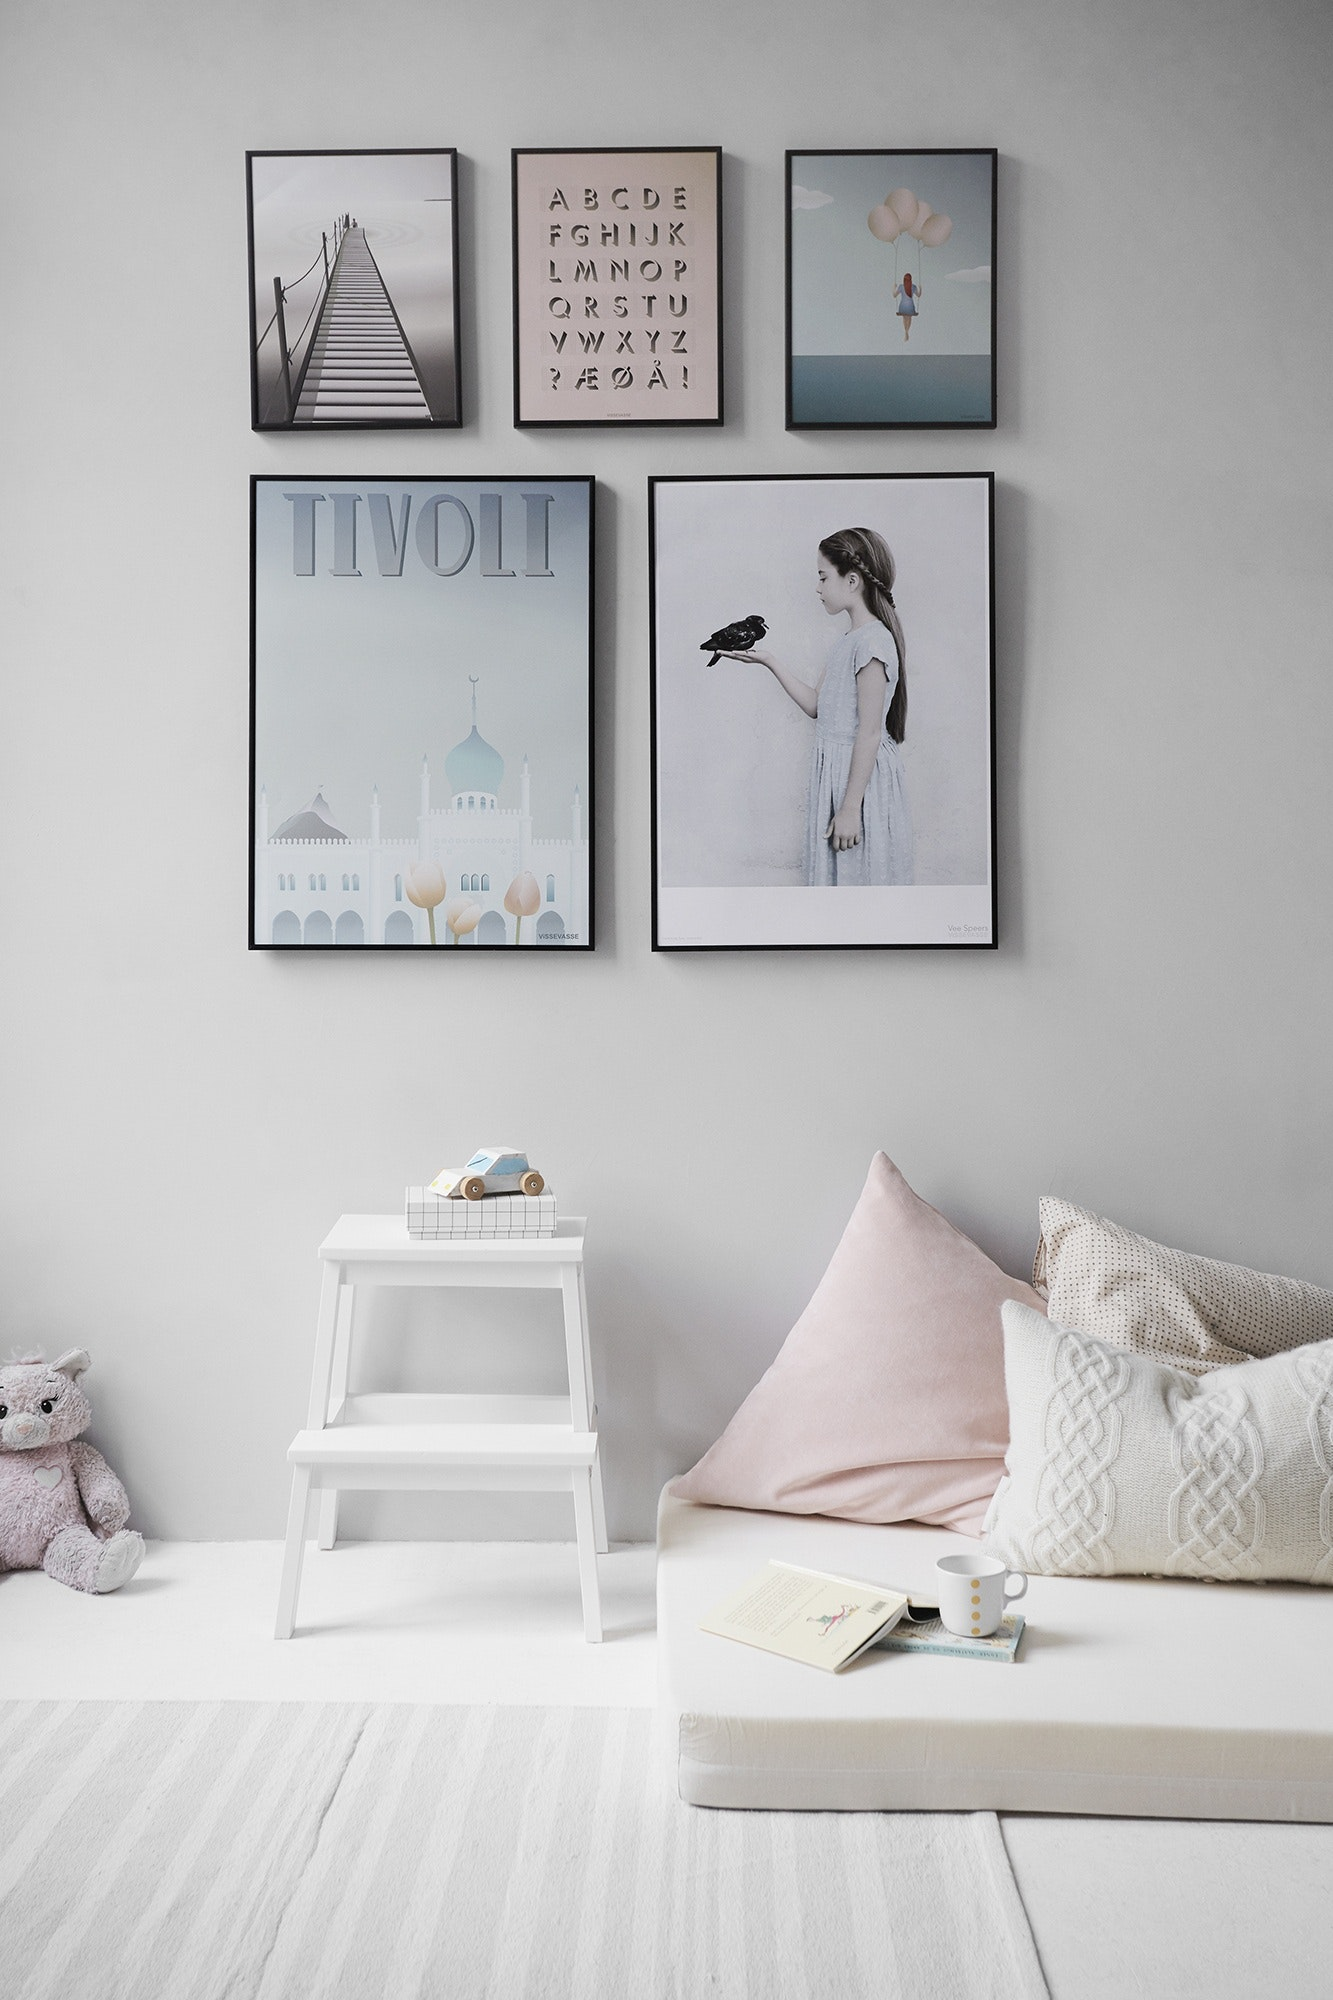 The-Home-Of-Interiors-New-York-London-Milan-Fashion-Week-Predicting-the-Next-Big-Interior-Styles-Trend-5-Pastels